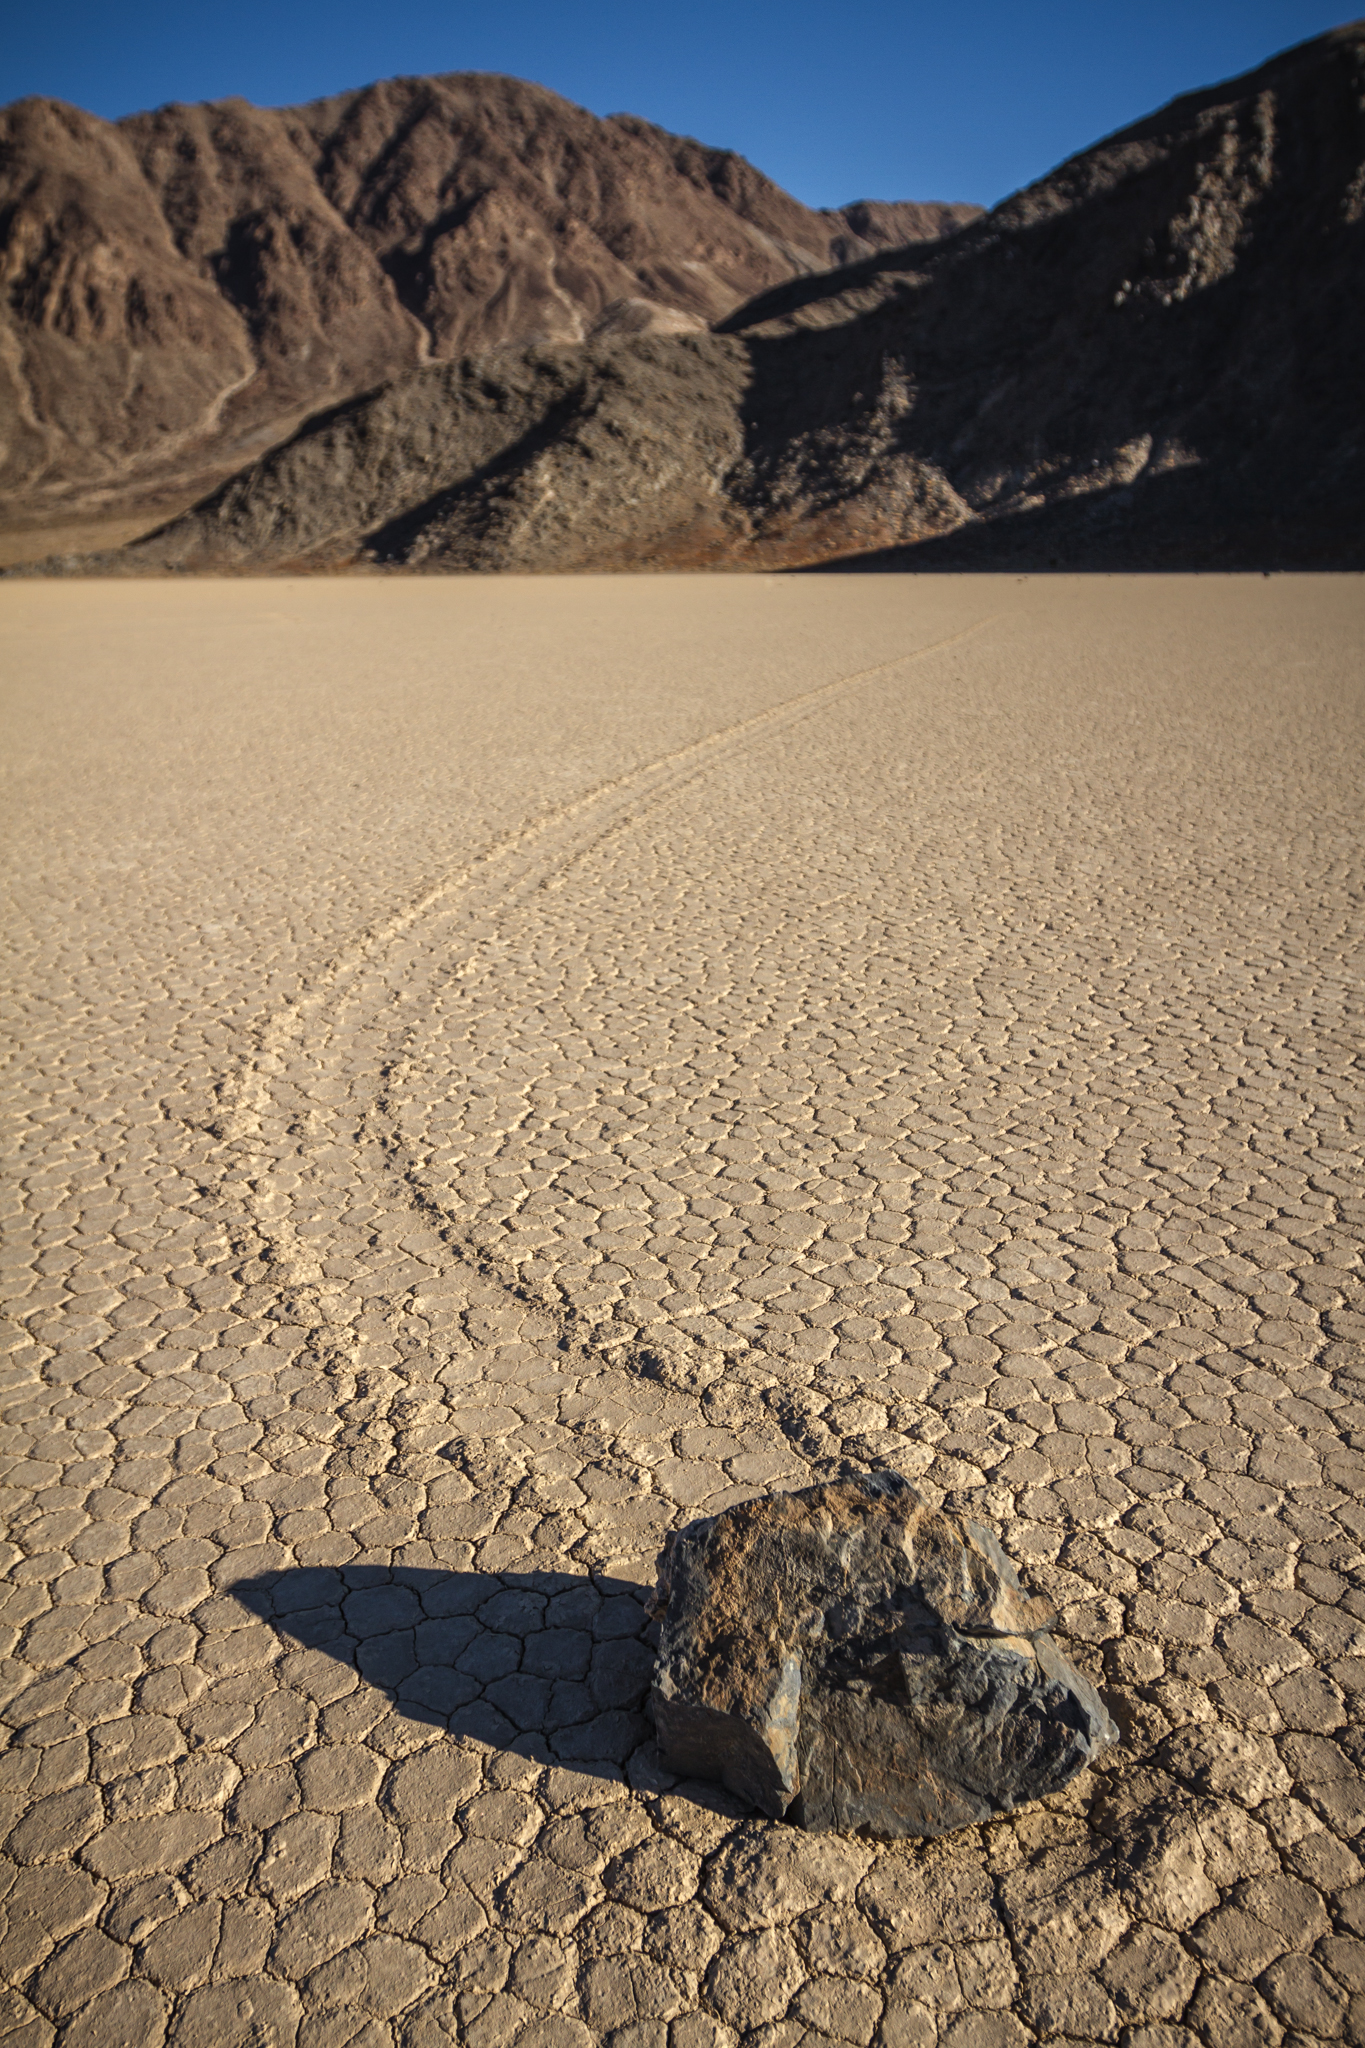 This is the Racetrack in Death Valley. The rocks move over the dried up lake bed and leave these trails.